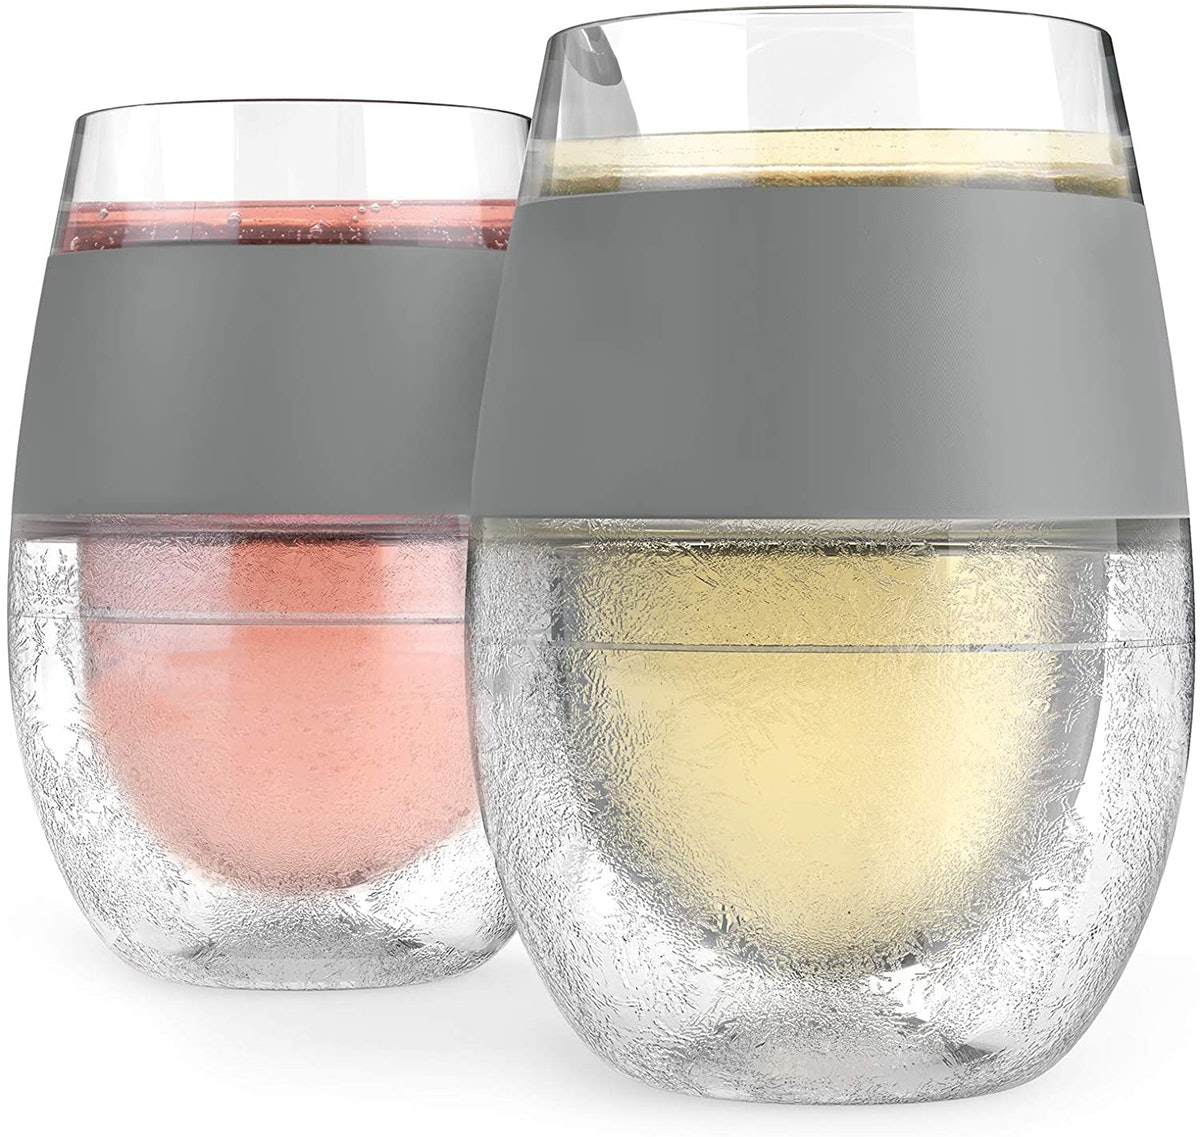 Host Freeze Cooling Cups (Set of 2)